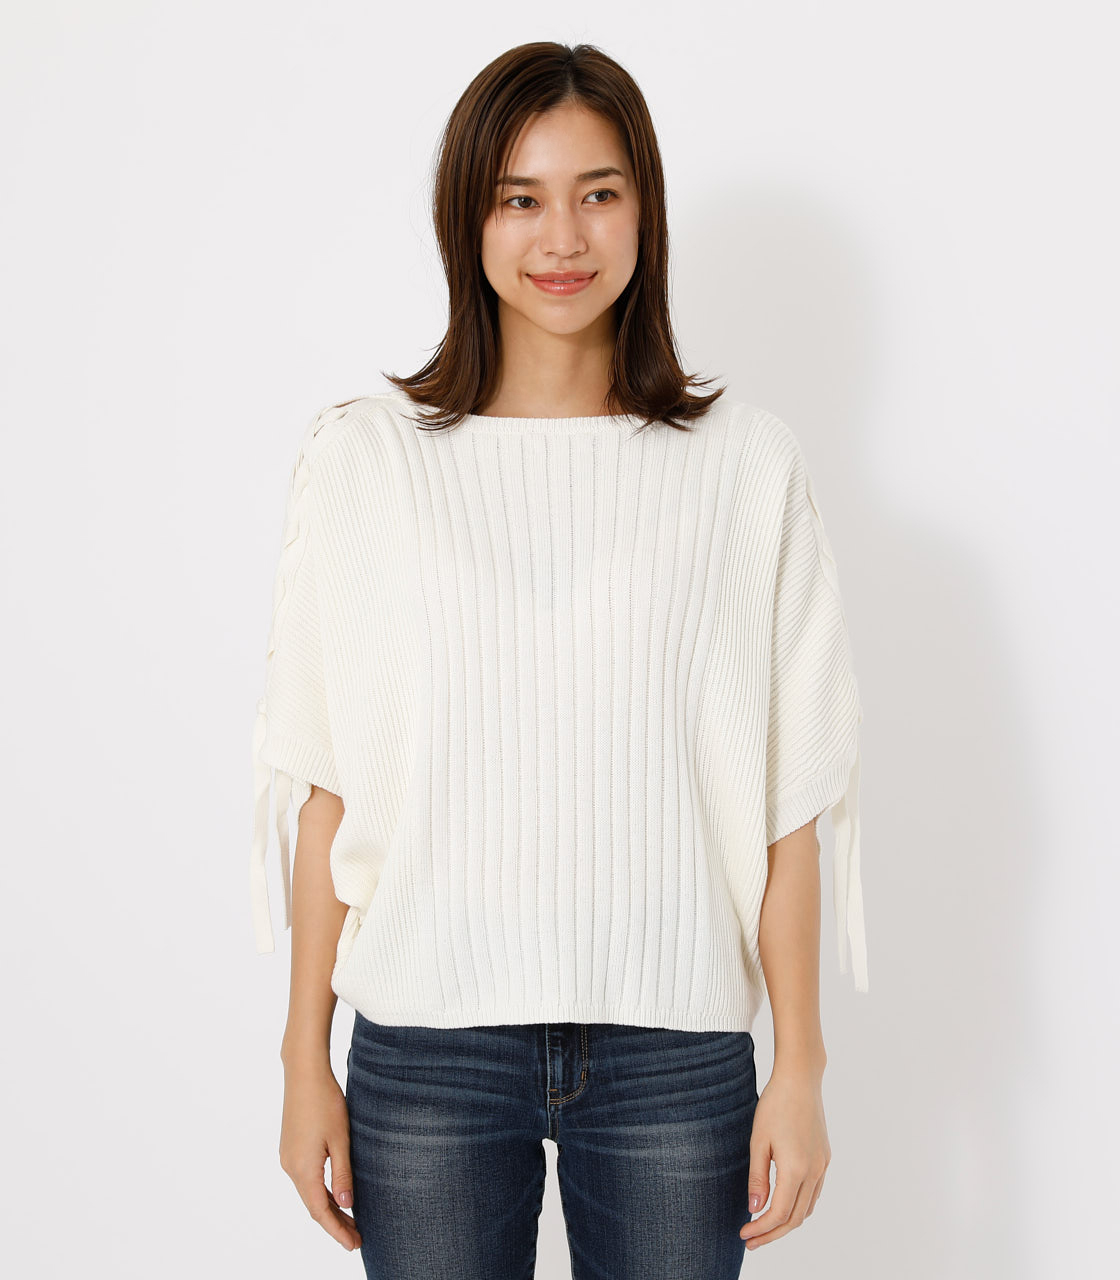 2WAY SHOULDER LACE-UP KNIT/2WAYショルダーレースアップニット 詳細画像 O/WHT 9